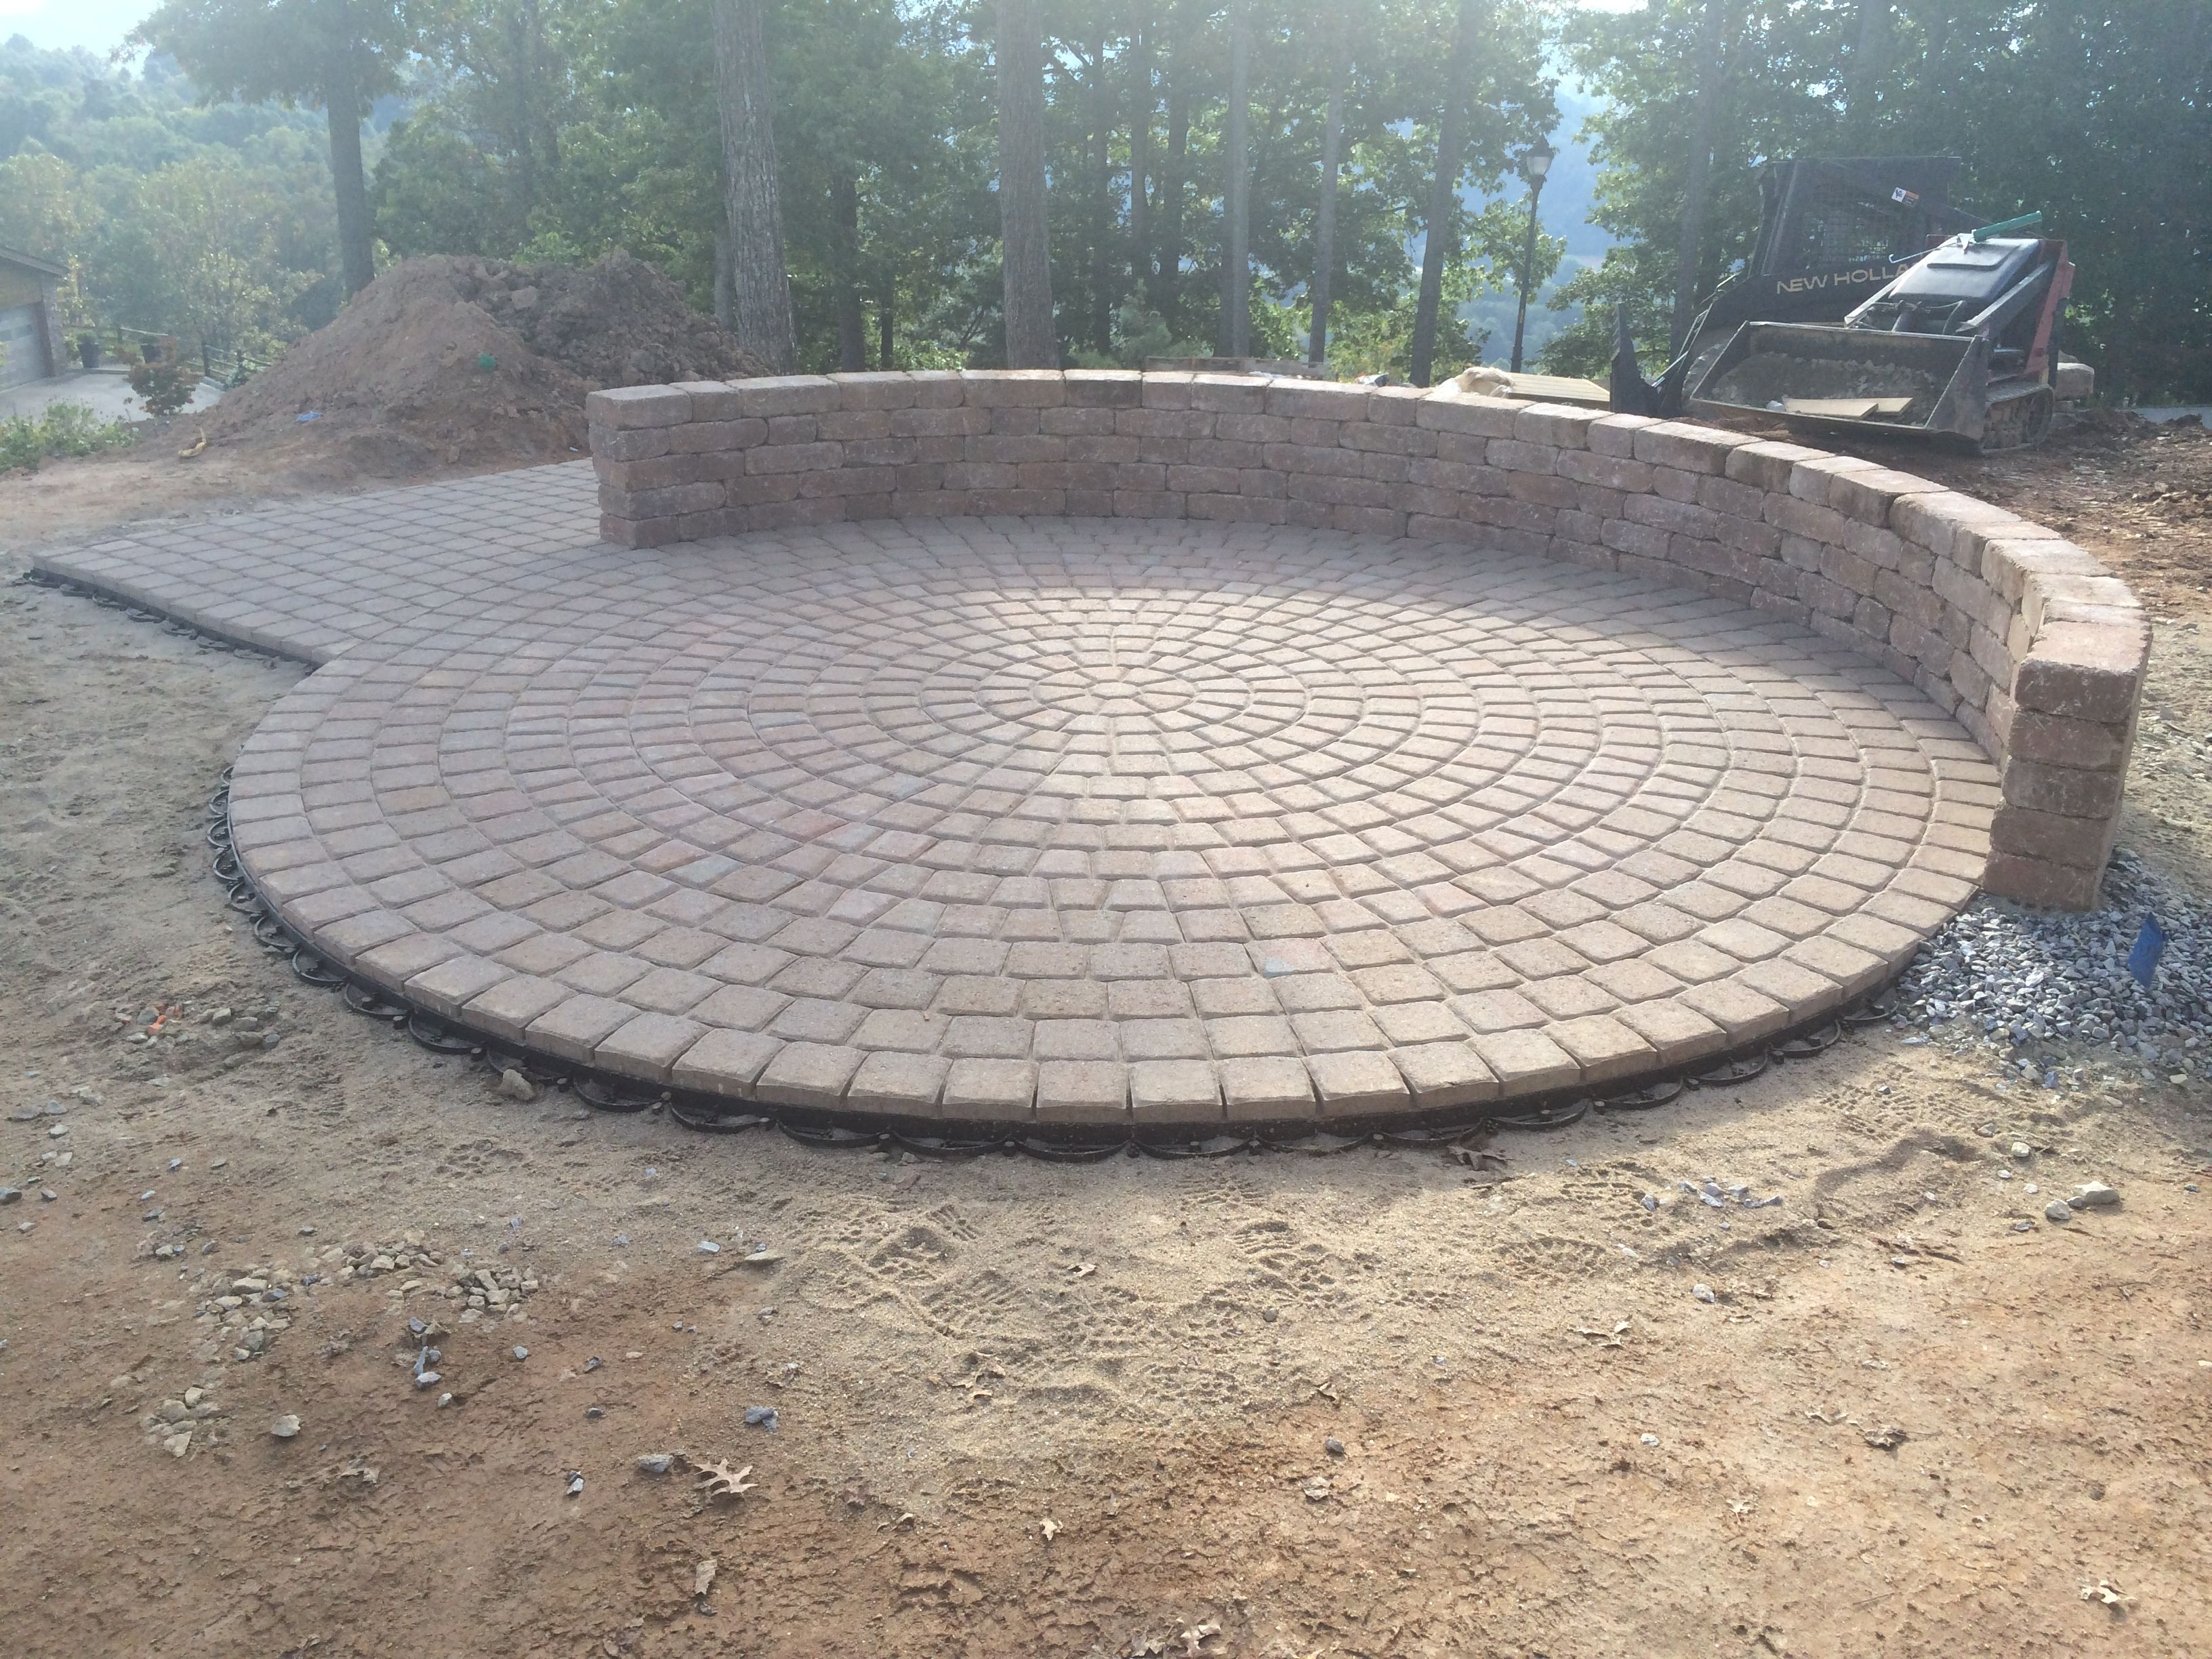 A Circle Shaped Concrete Paver Patio With Attached Semi Circular